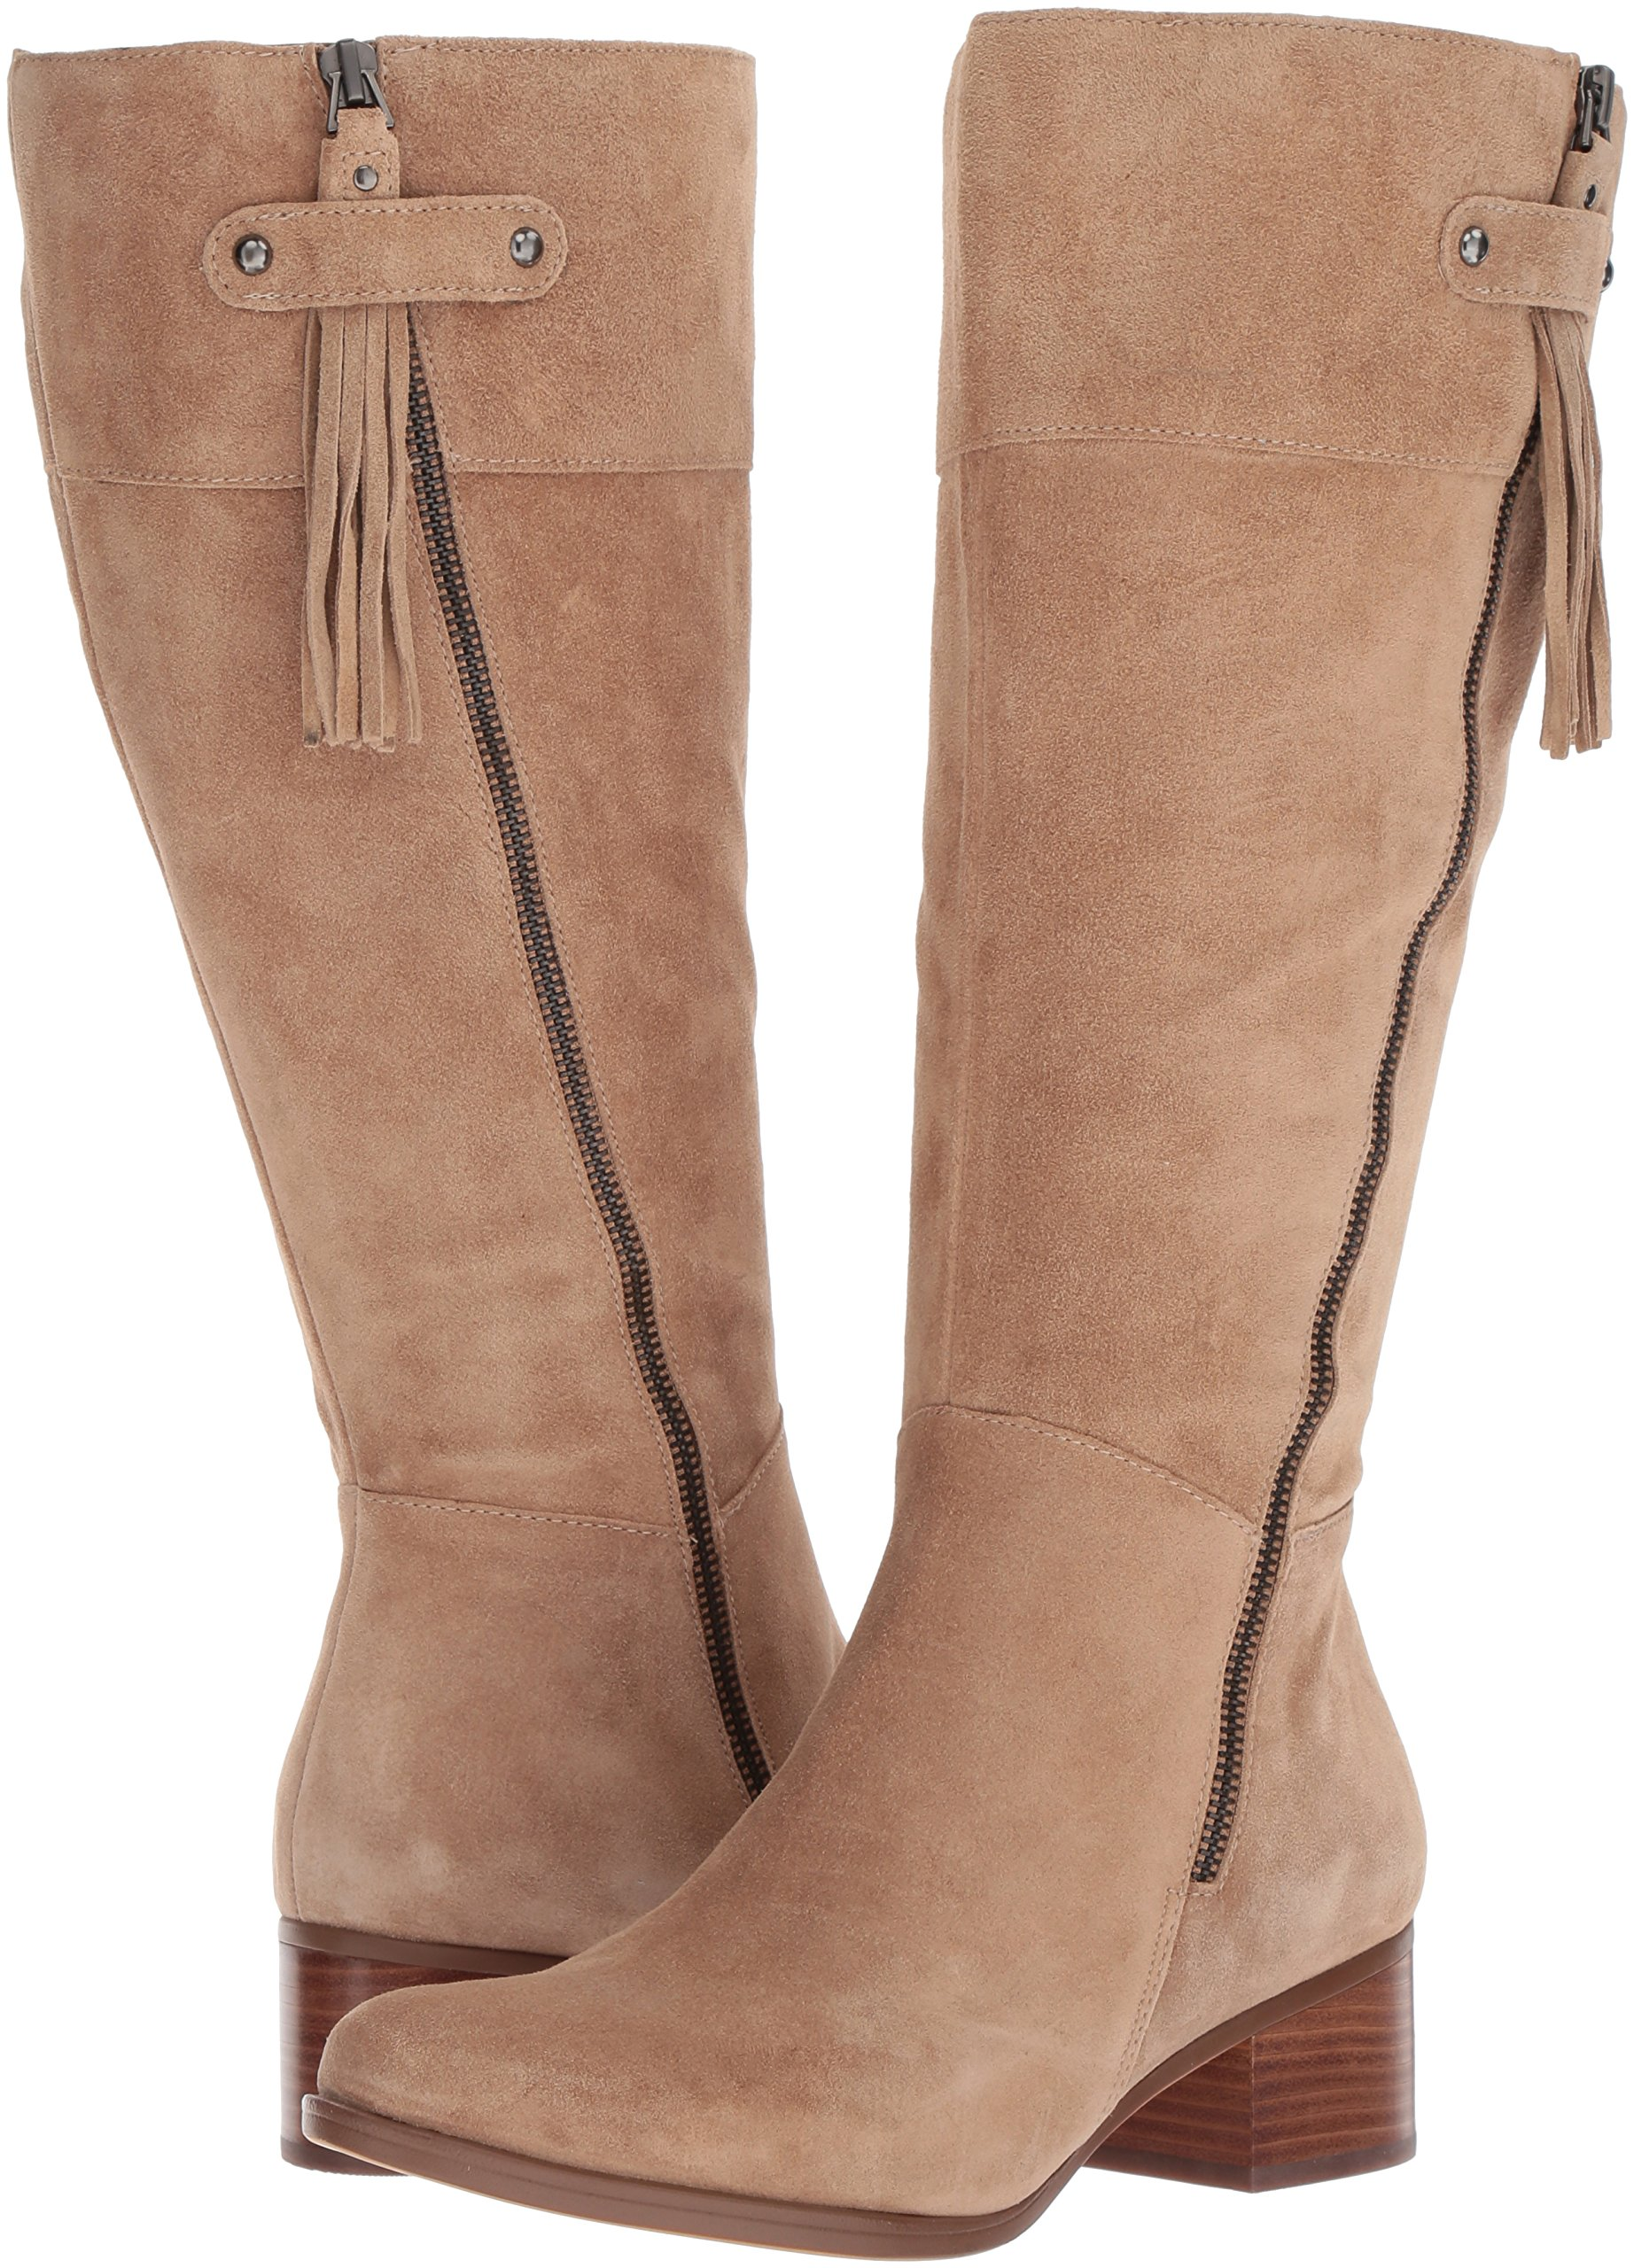 Naturalizer Women's Demi Wc Riding Boot, Oatmeal, 9 M US by Naturalizer (Image #6)